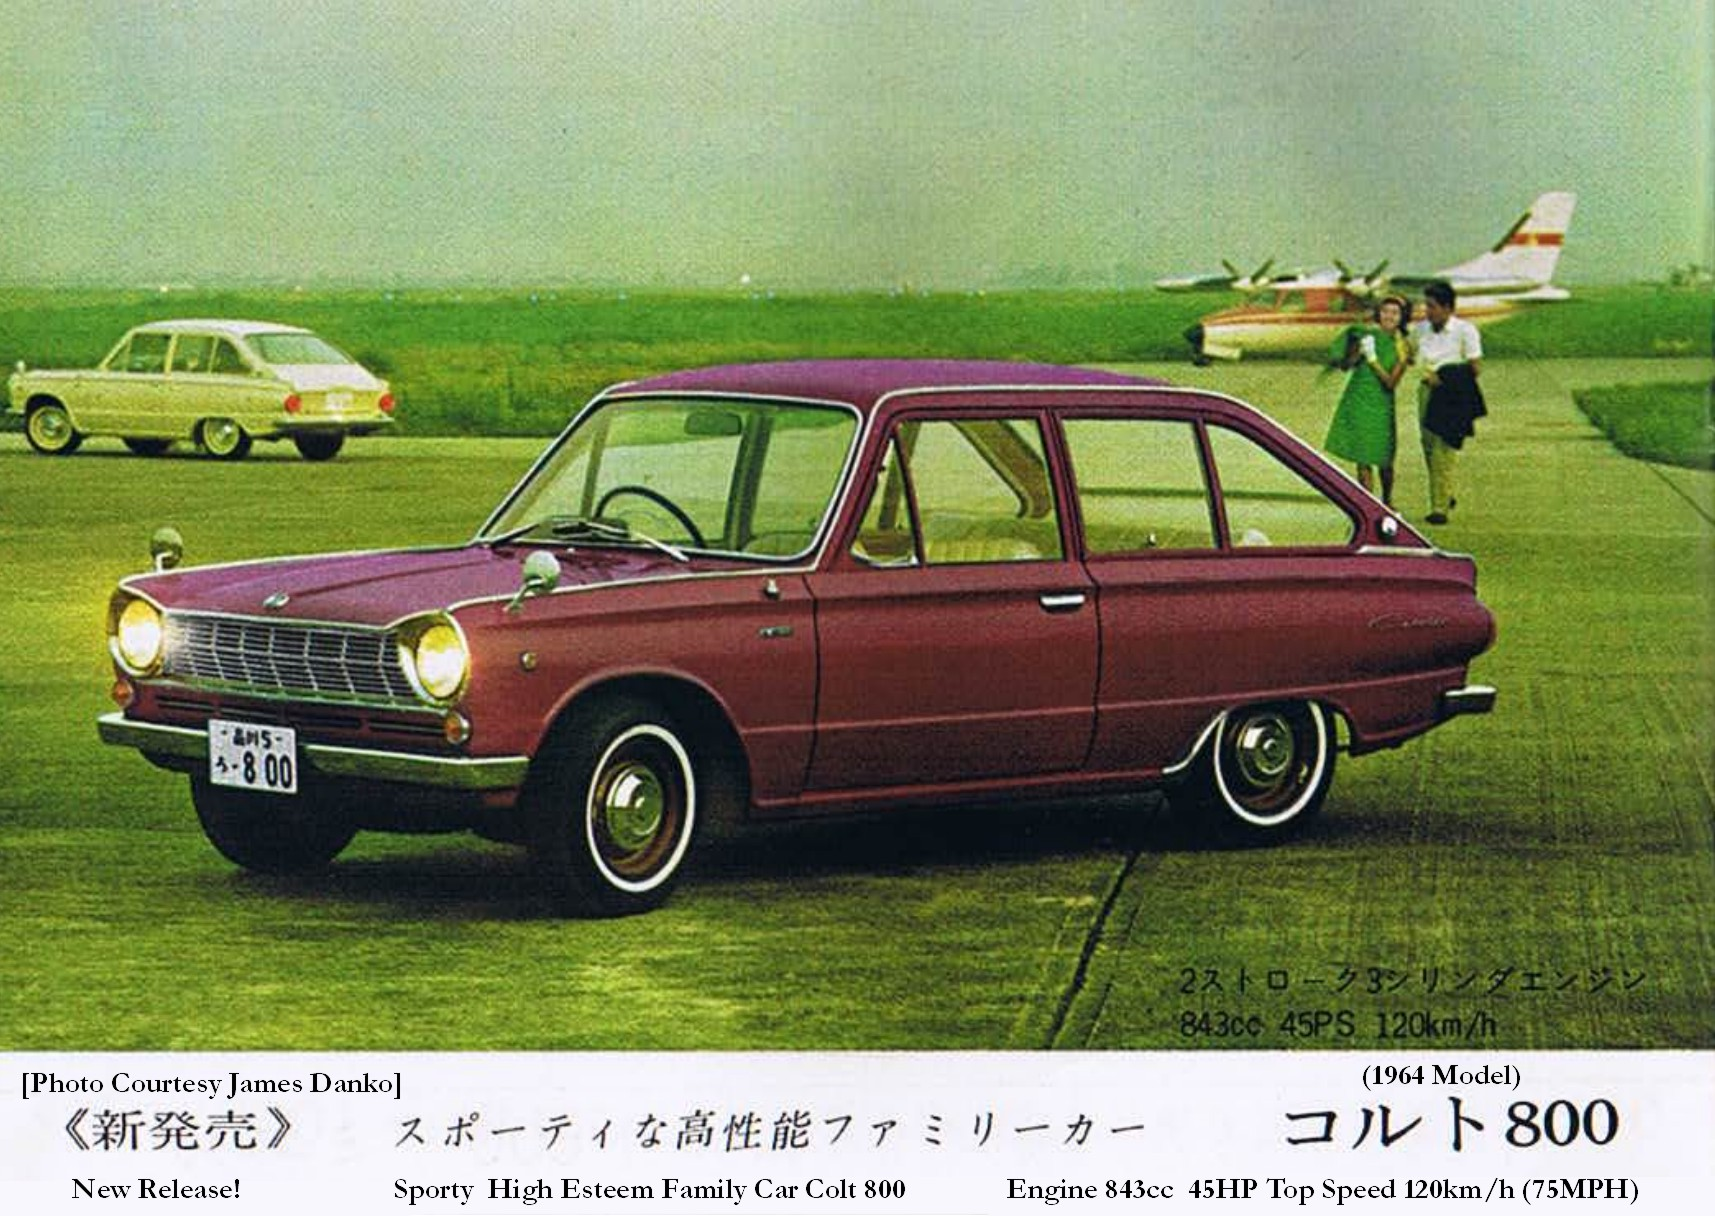 Japanese Classic Car Pampletes and Pictures